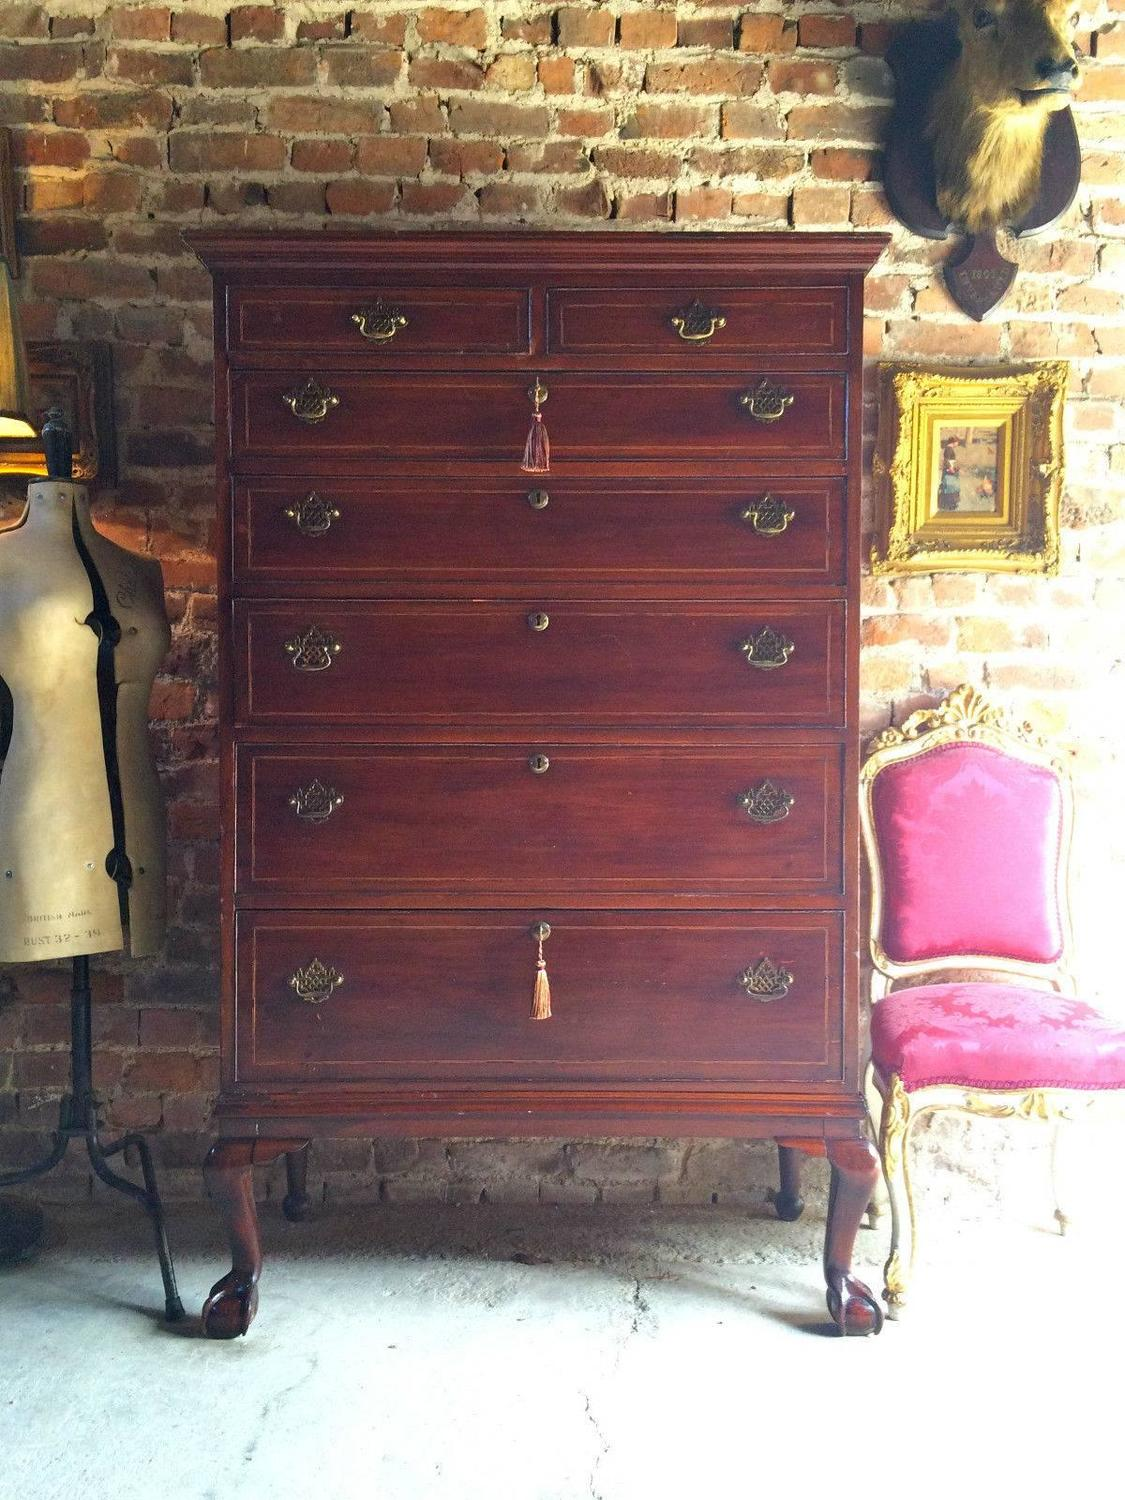 #C2096A Antique Tallboy Chest Of Drawers Dresser Mahogany 19th  with 1125x1500 px of Highly Rated Vintage Tallboy Chest Of Drawers 15001125 picture/photo @ avoidforclosure.info